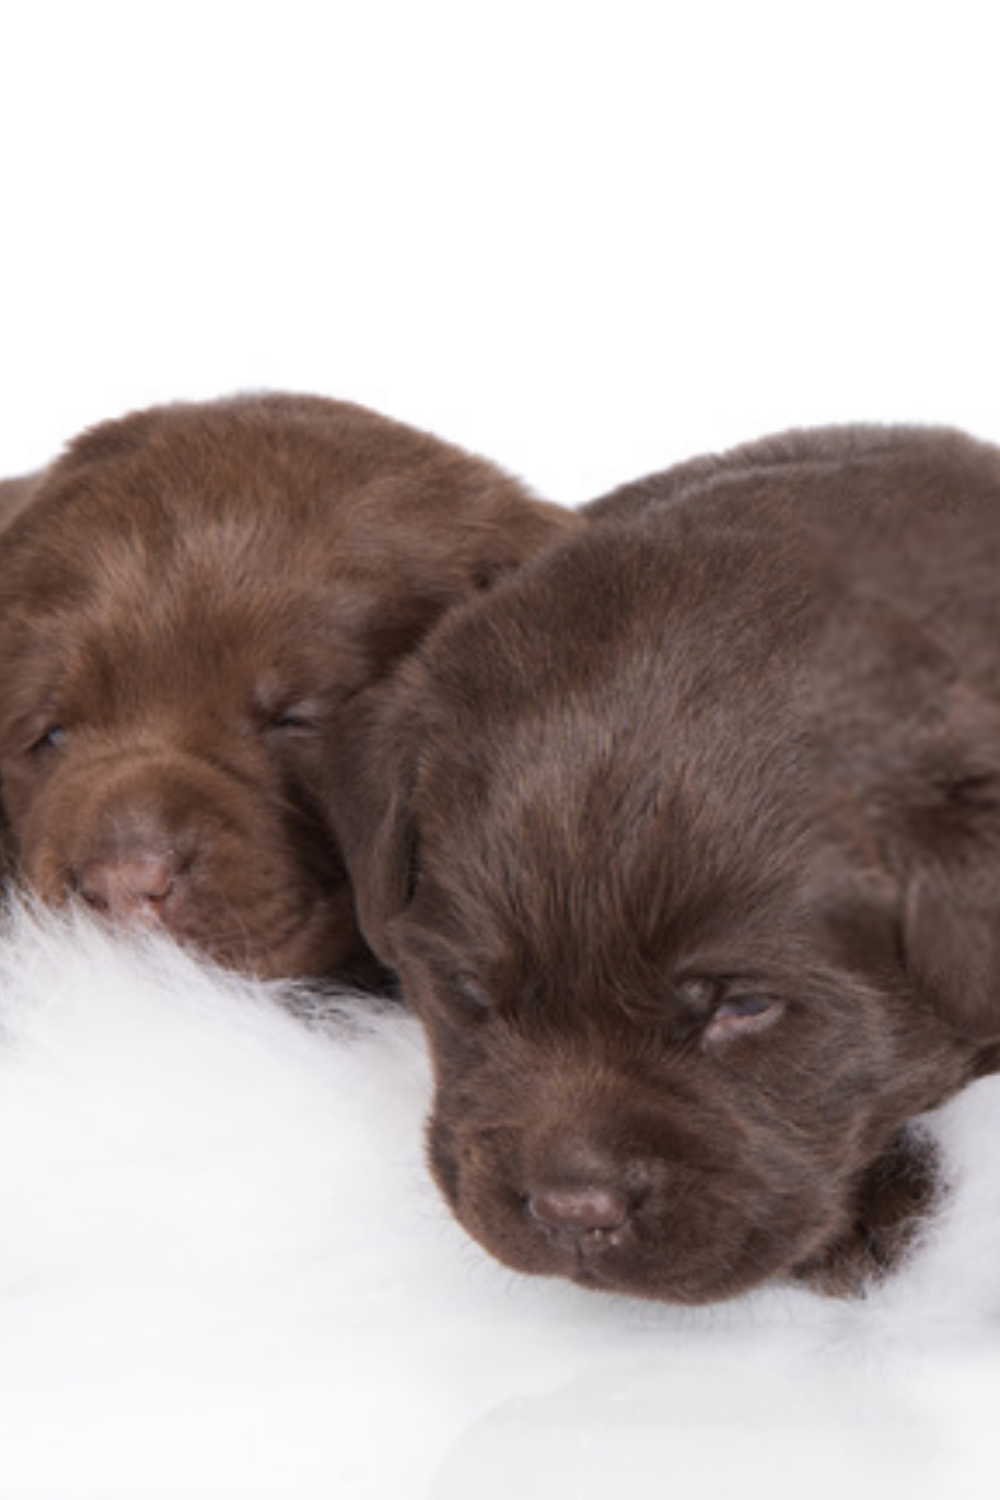 Chocolate Lab Puppies In 2020 With Images Lab Puppies